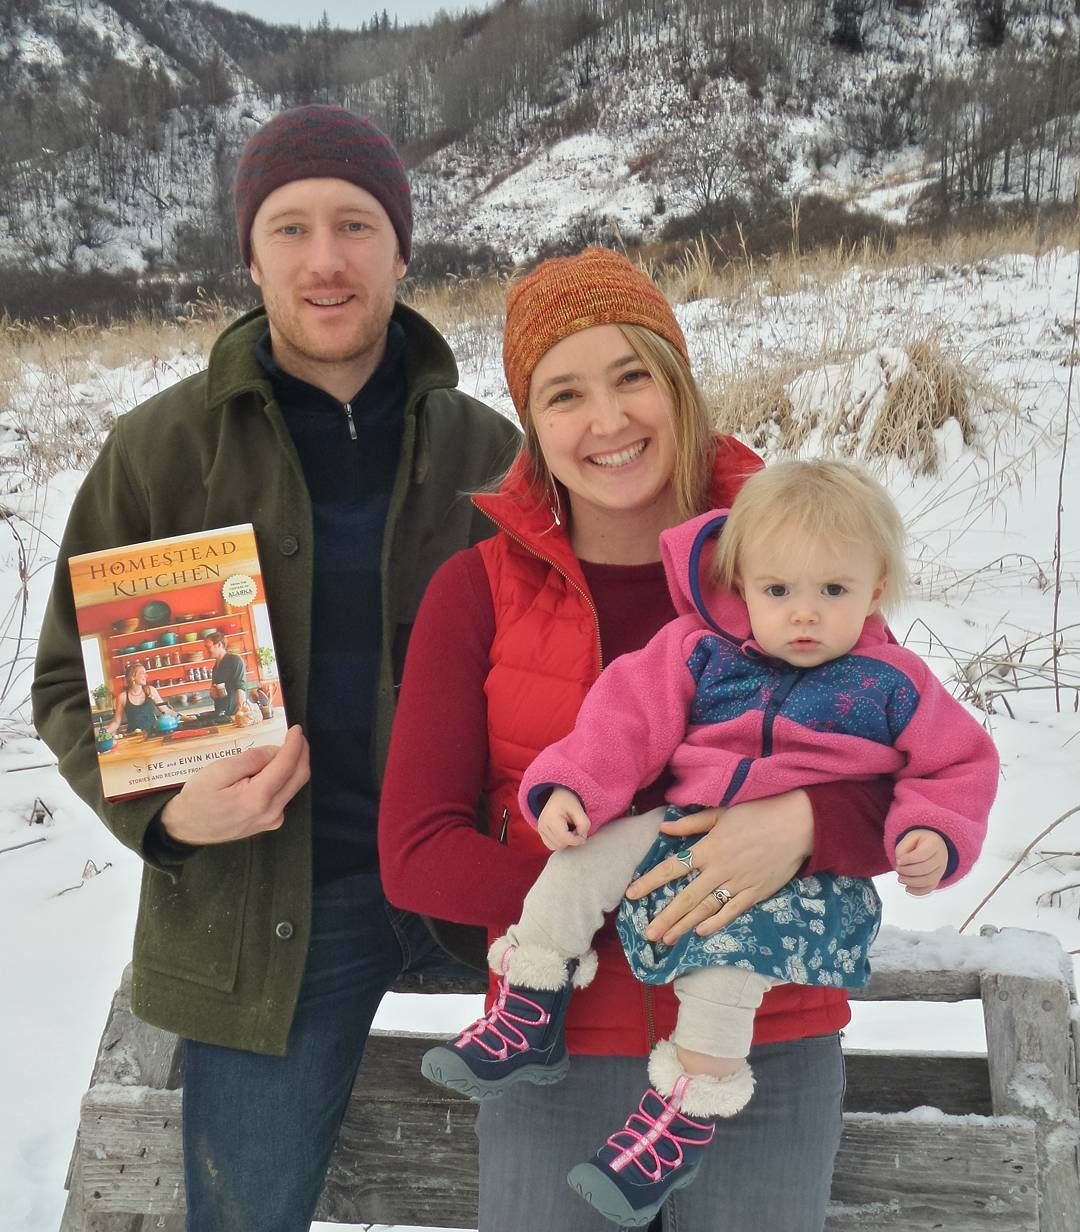 The Kilchers posing for a picture. Eivin is holding a book and Eve is carrying their child wearing winter clothes